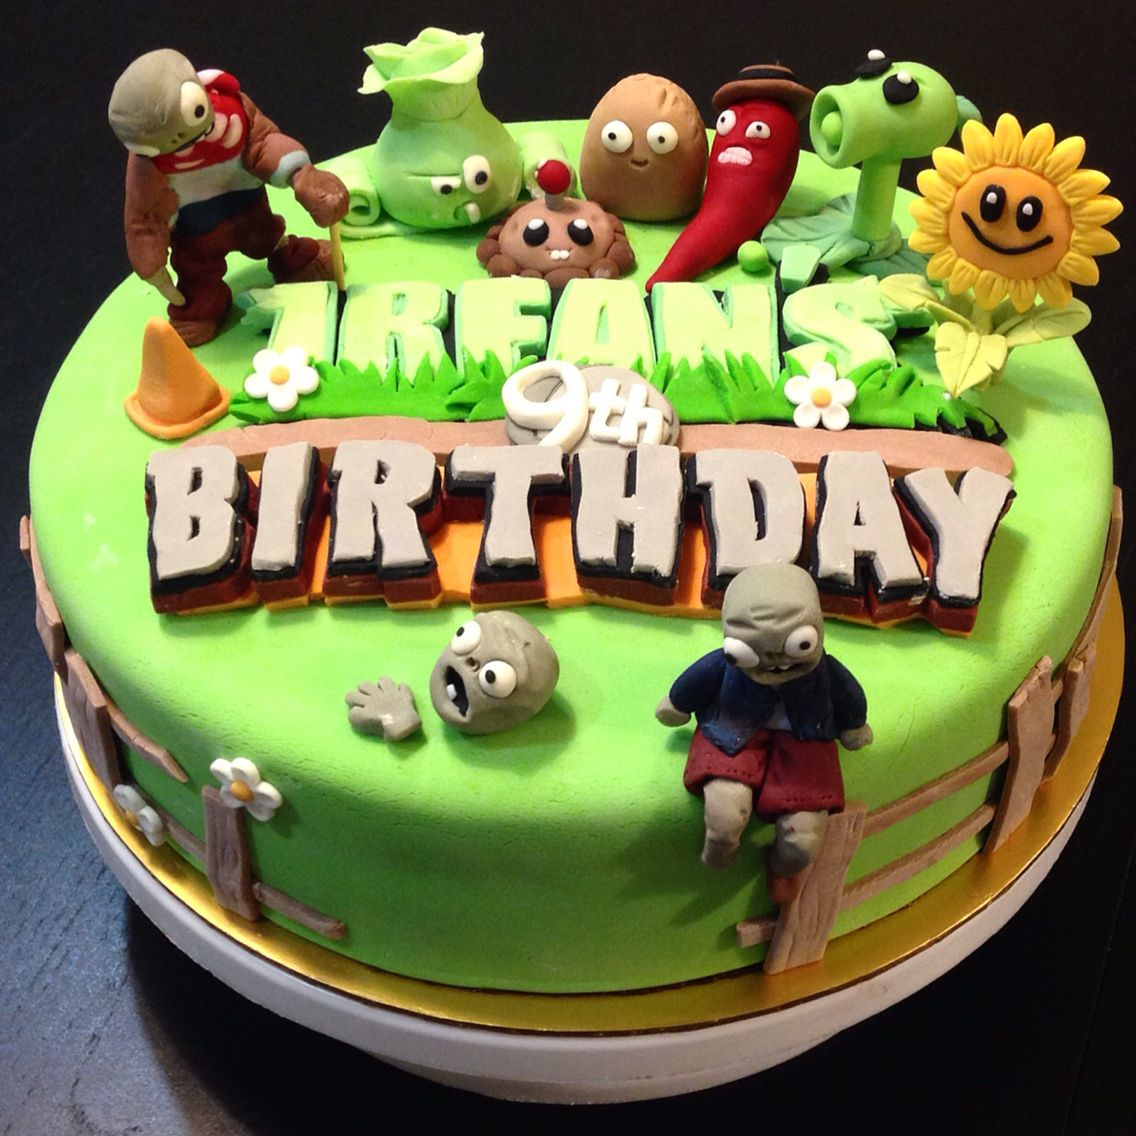 Miraculous Plants Vs Zombies Cake Zombie Cake Plants Vs Zombies Cake Personalised Birthday Cards Paralily Jamesorg